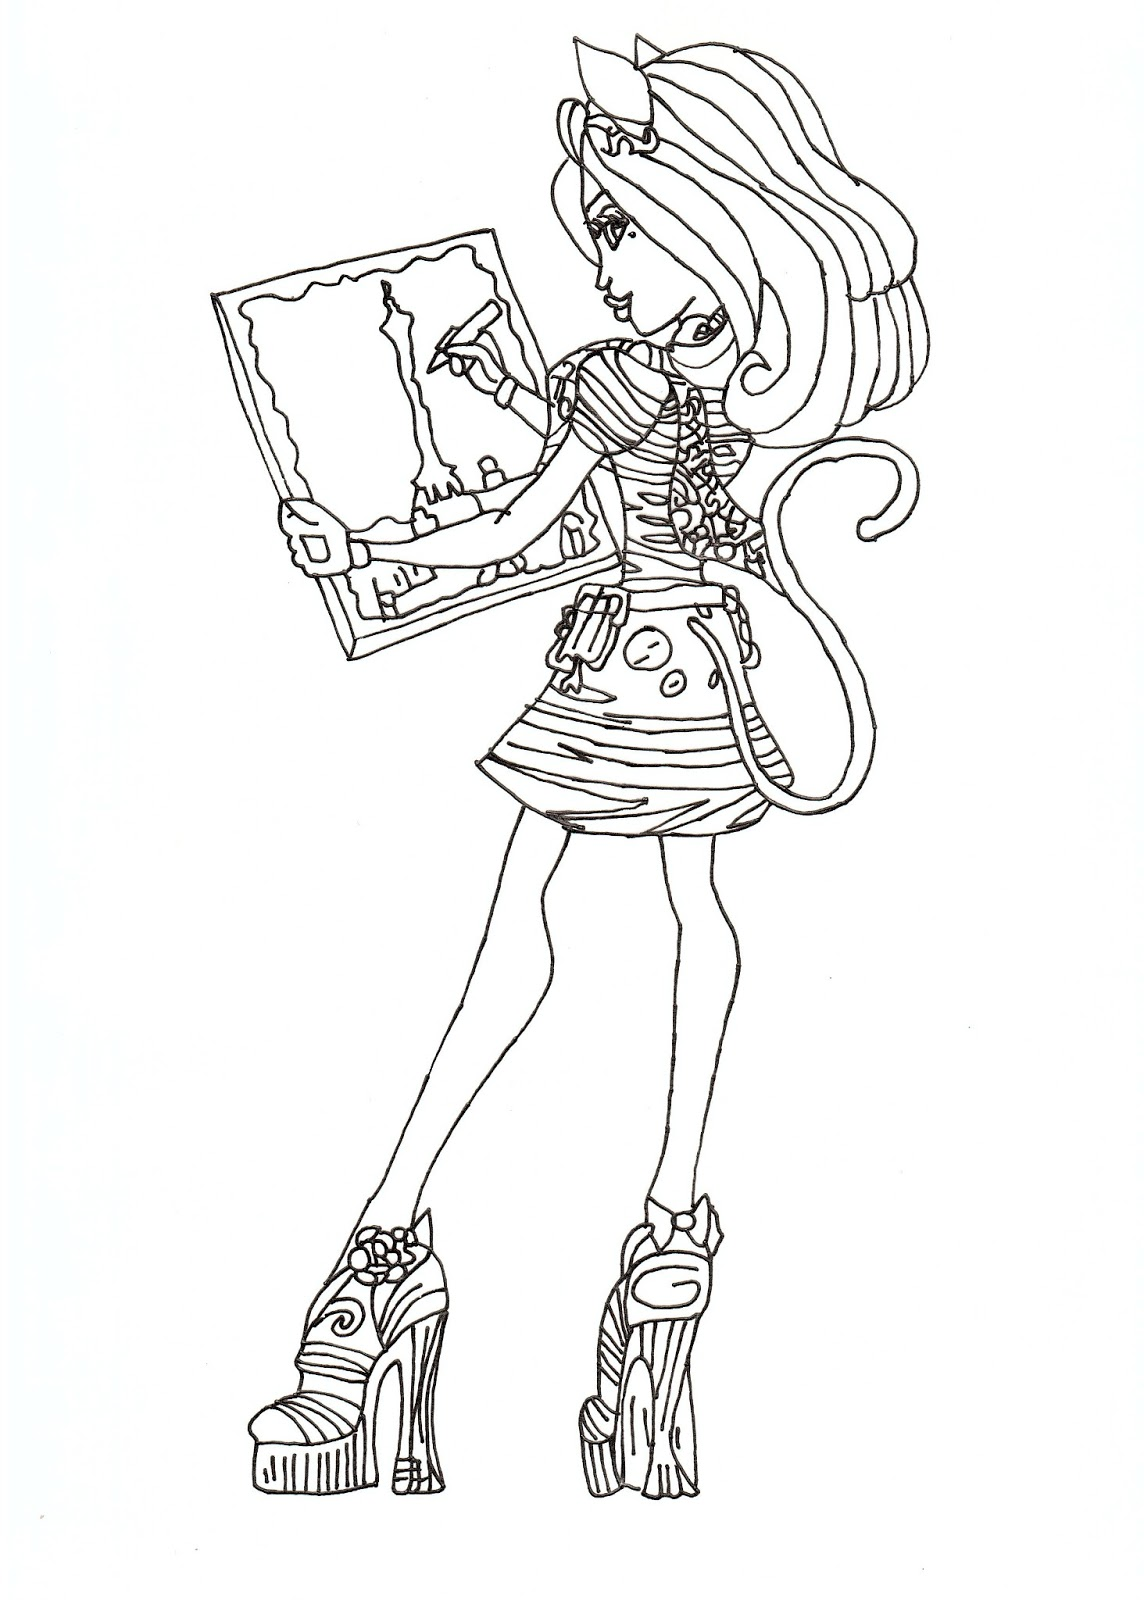 Free printable monster high coloring pages catrine de mew - Coloriage prin ...